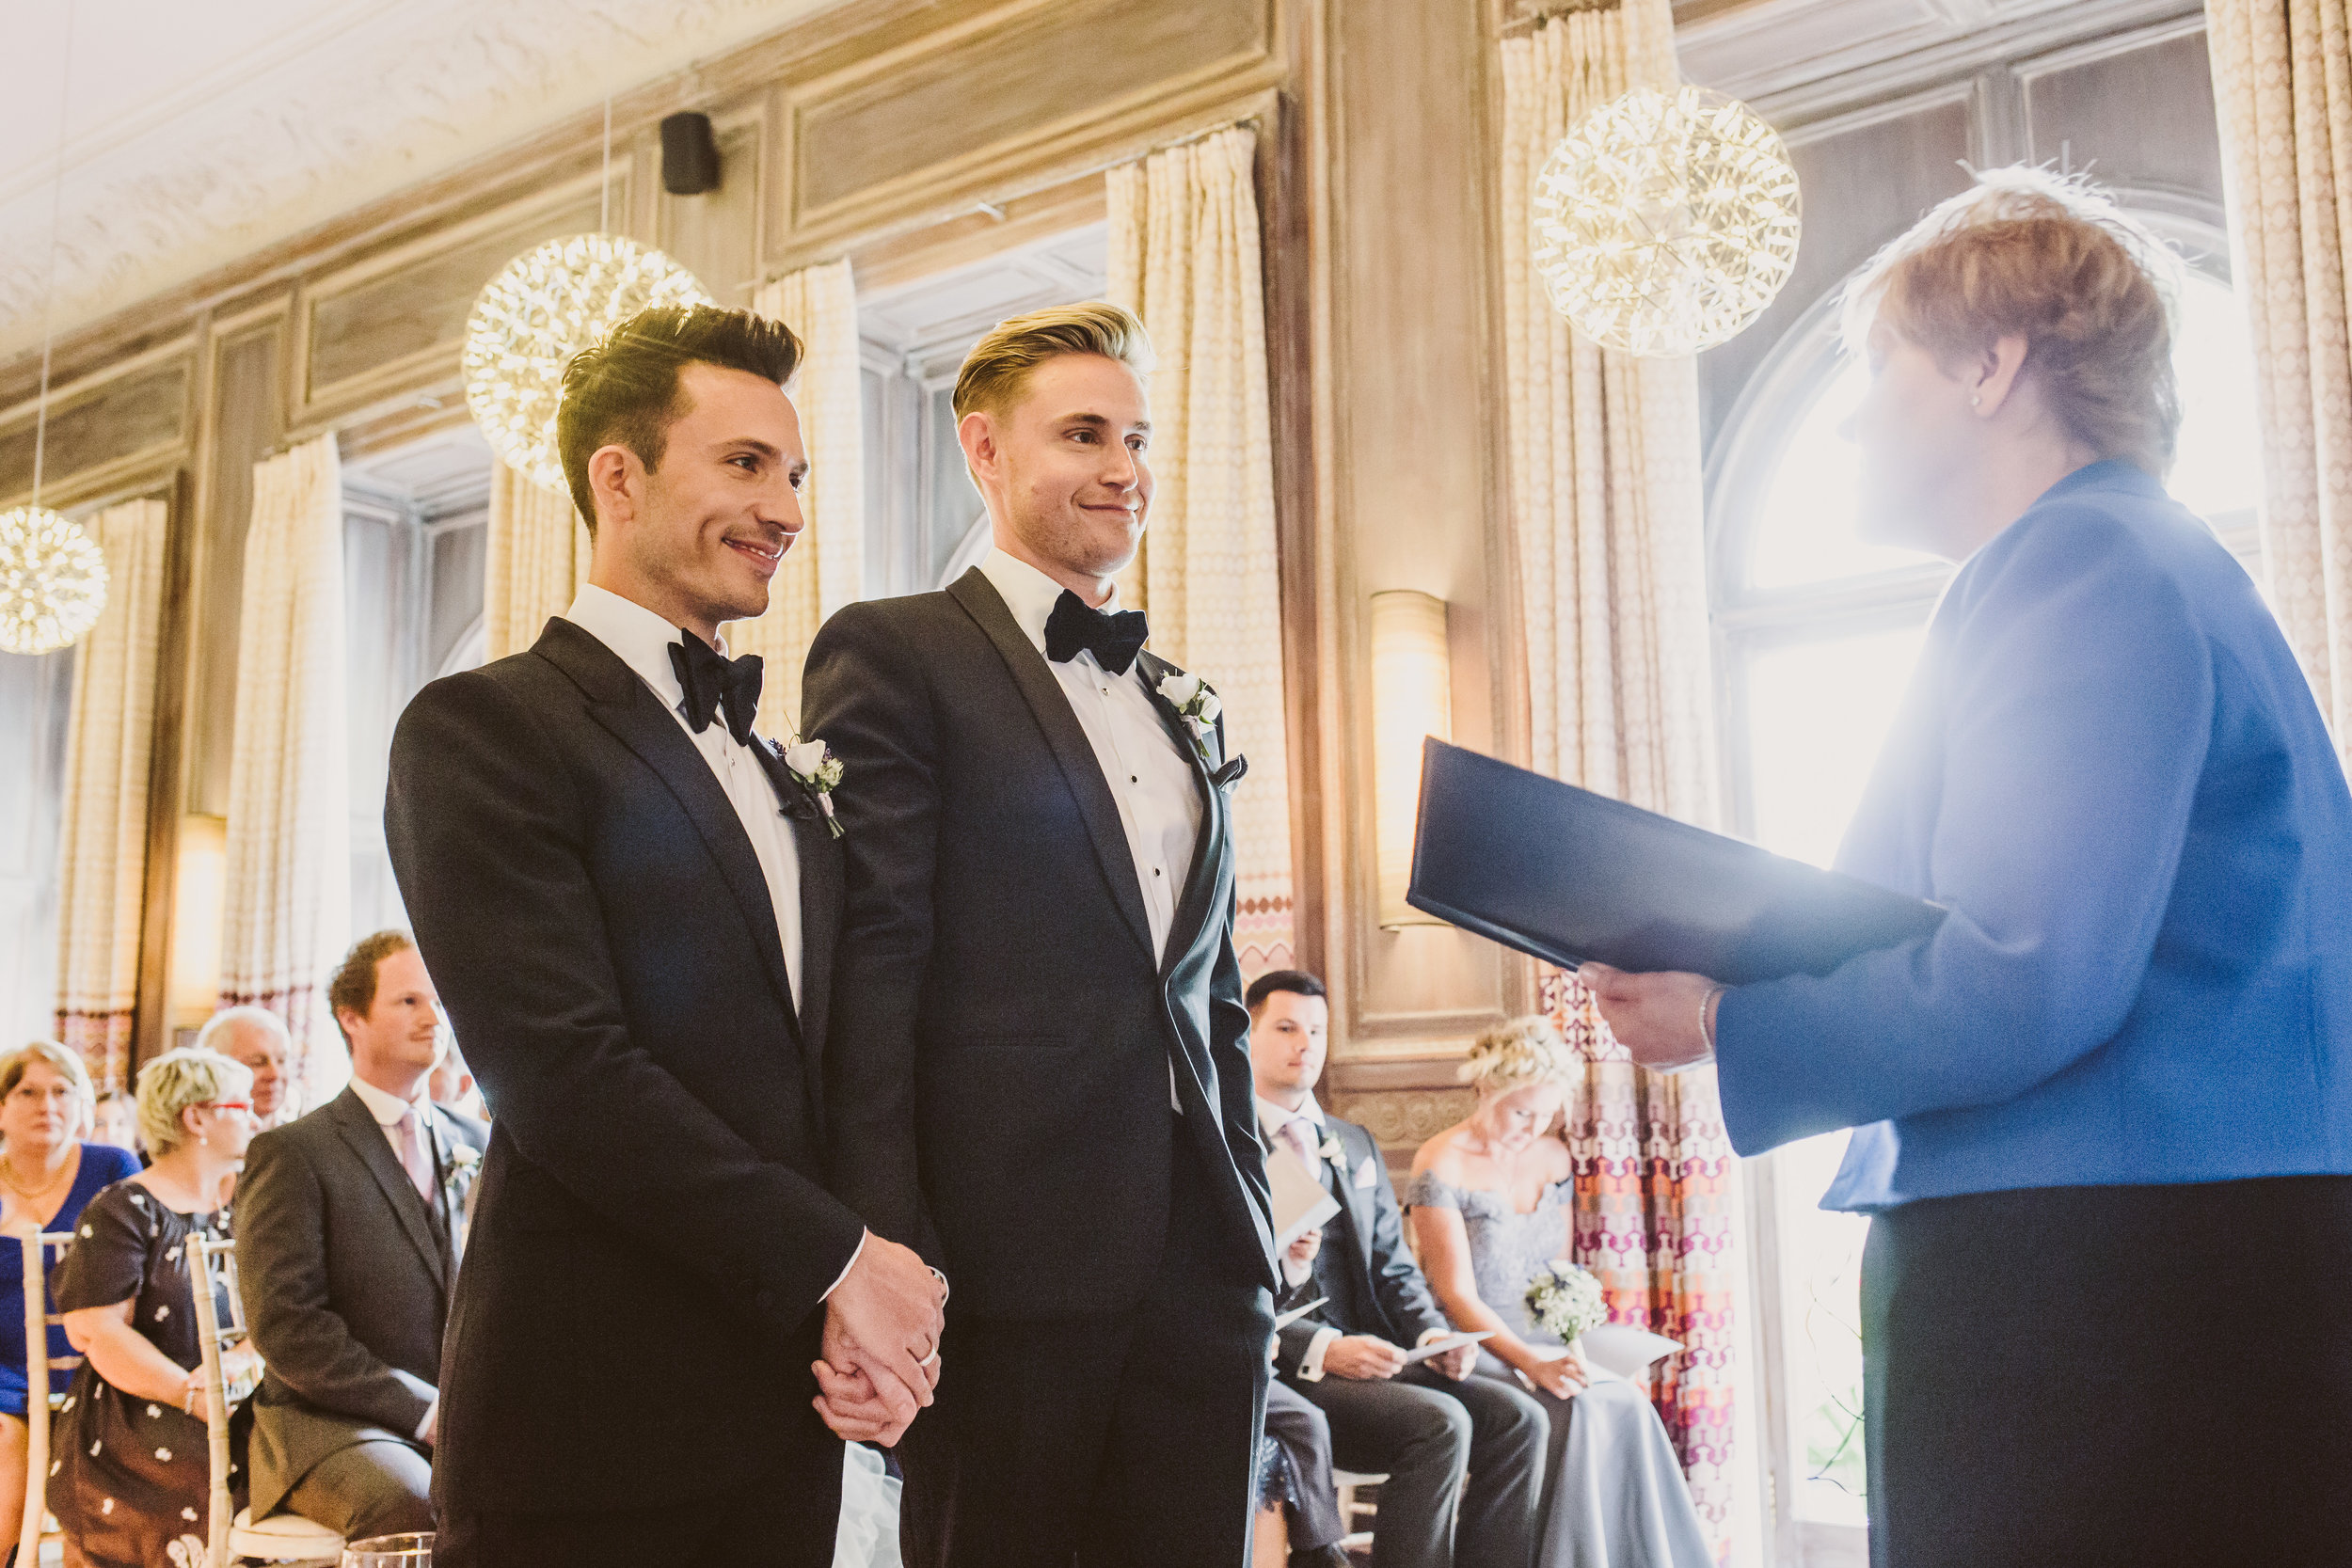 mr-theodore_same-sex-wedding07.jpg